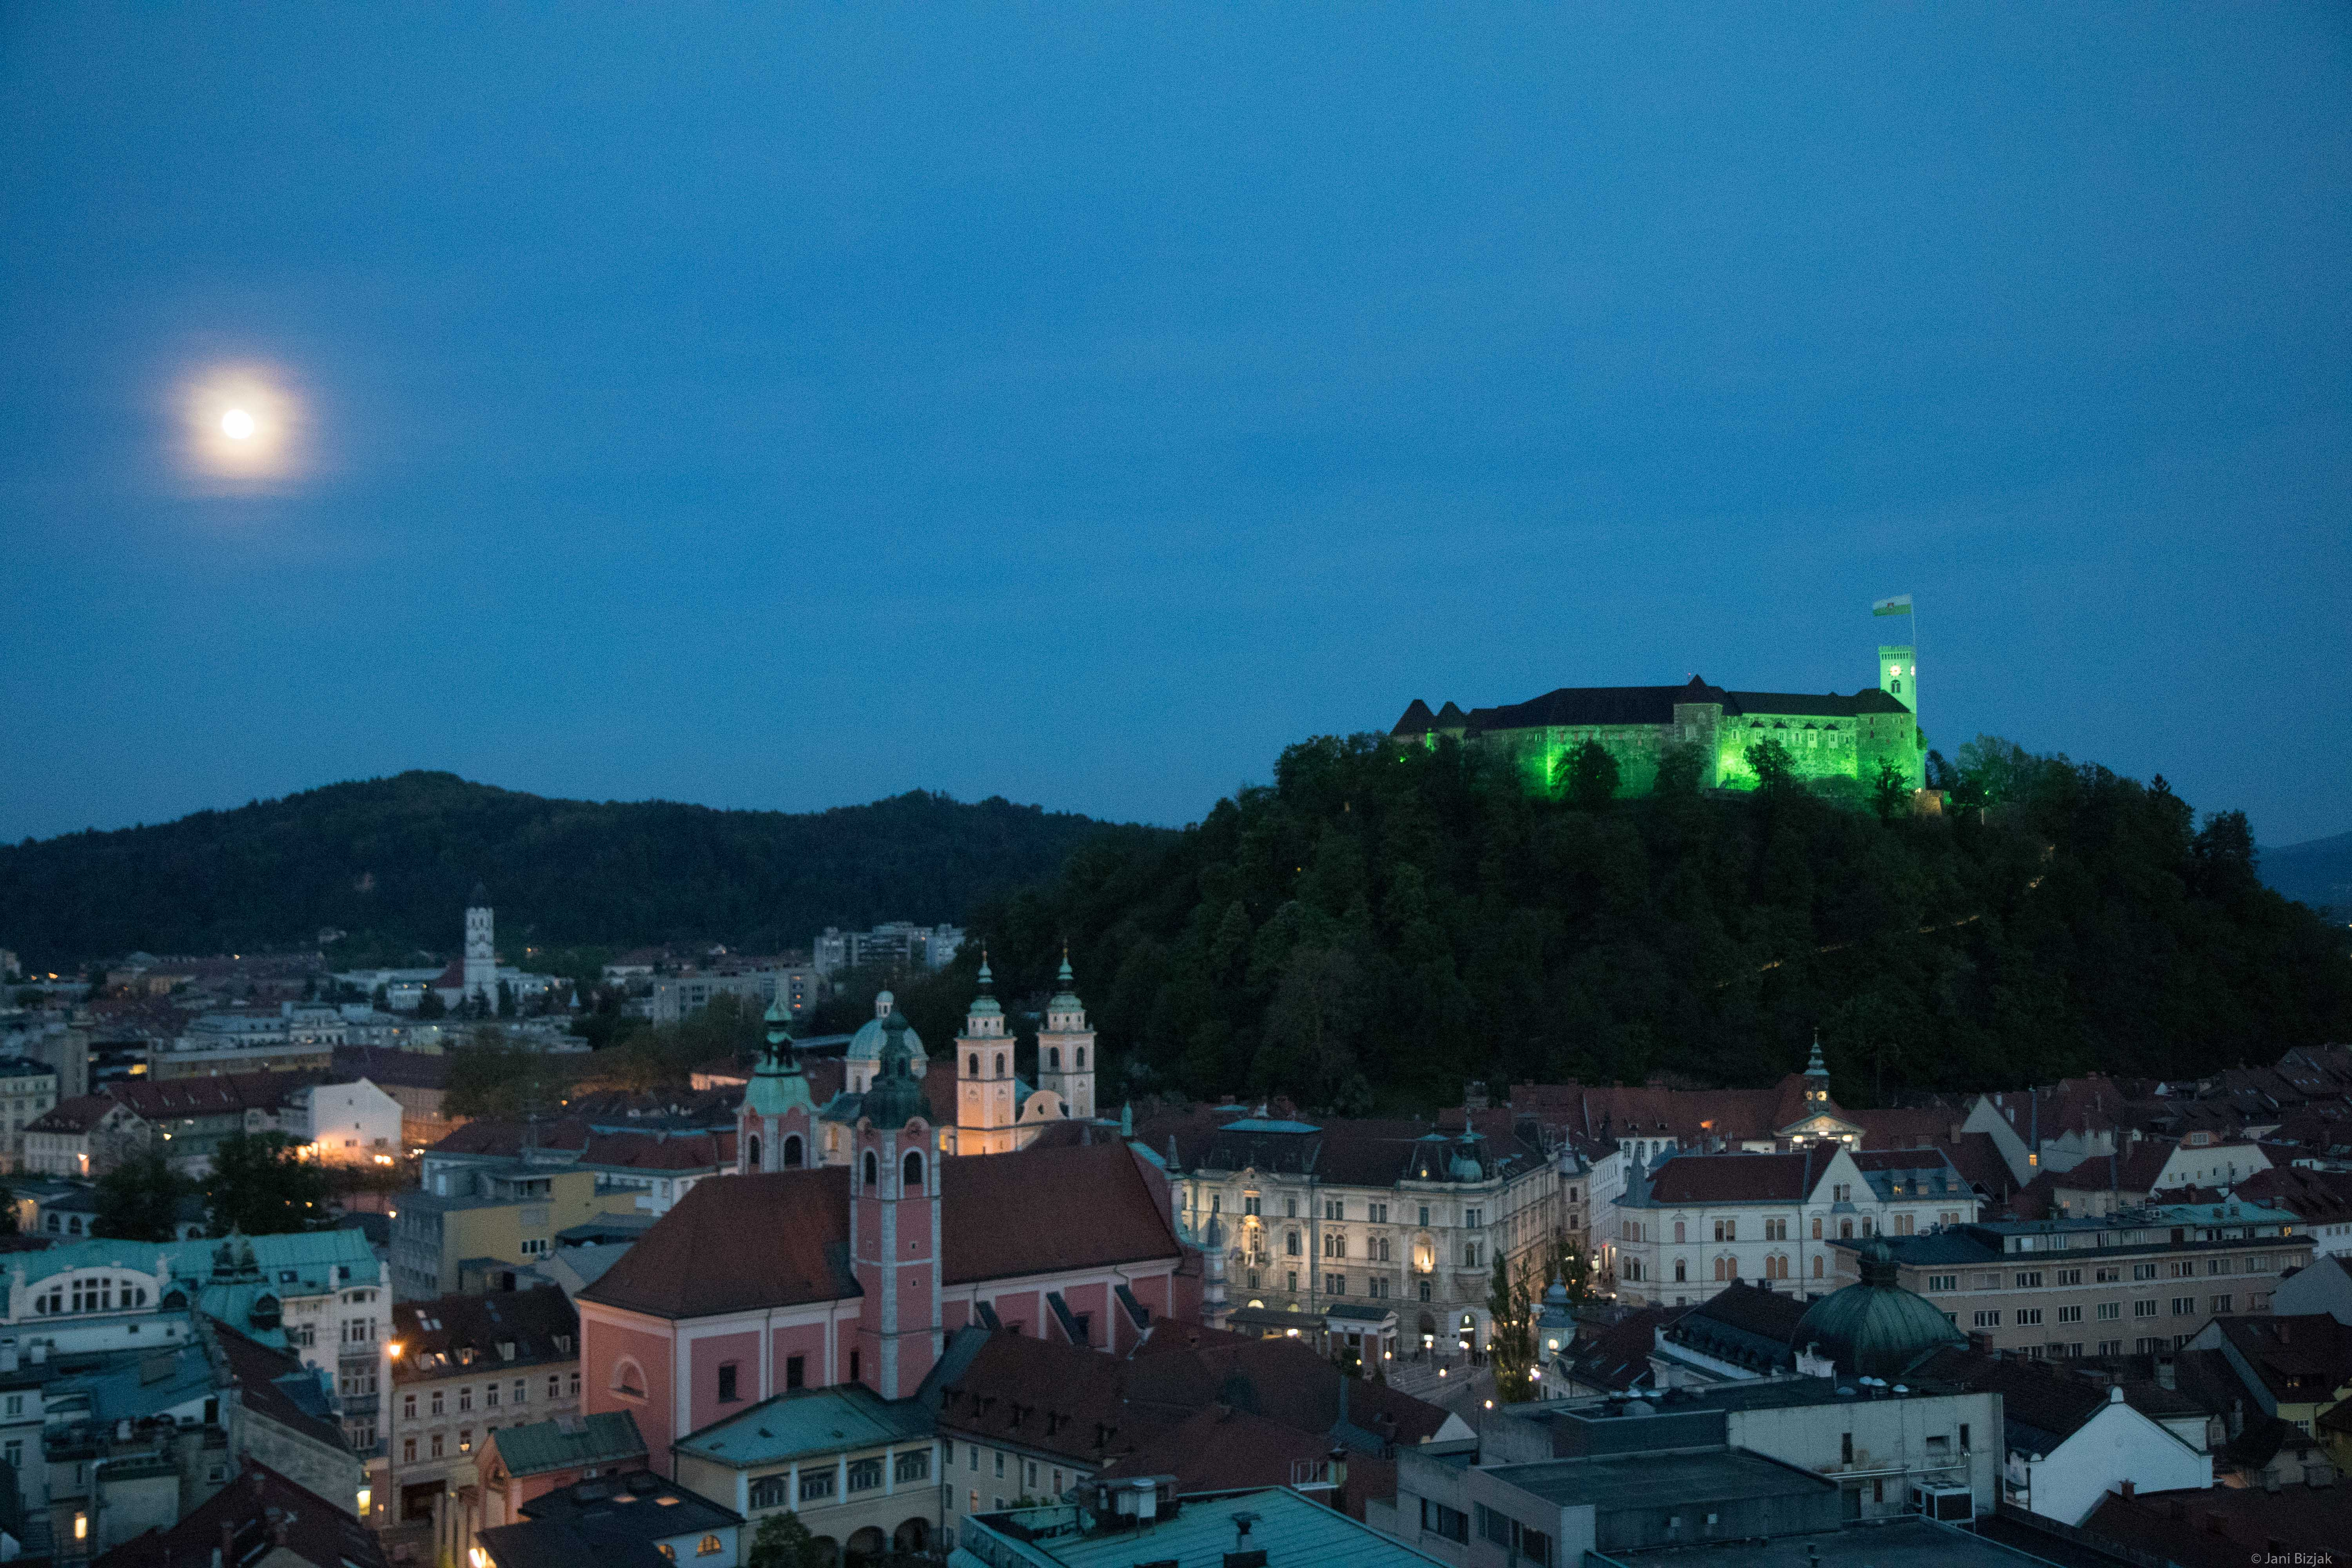 Ljubljana castle colored green for the green capital of Europe.